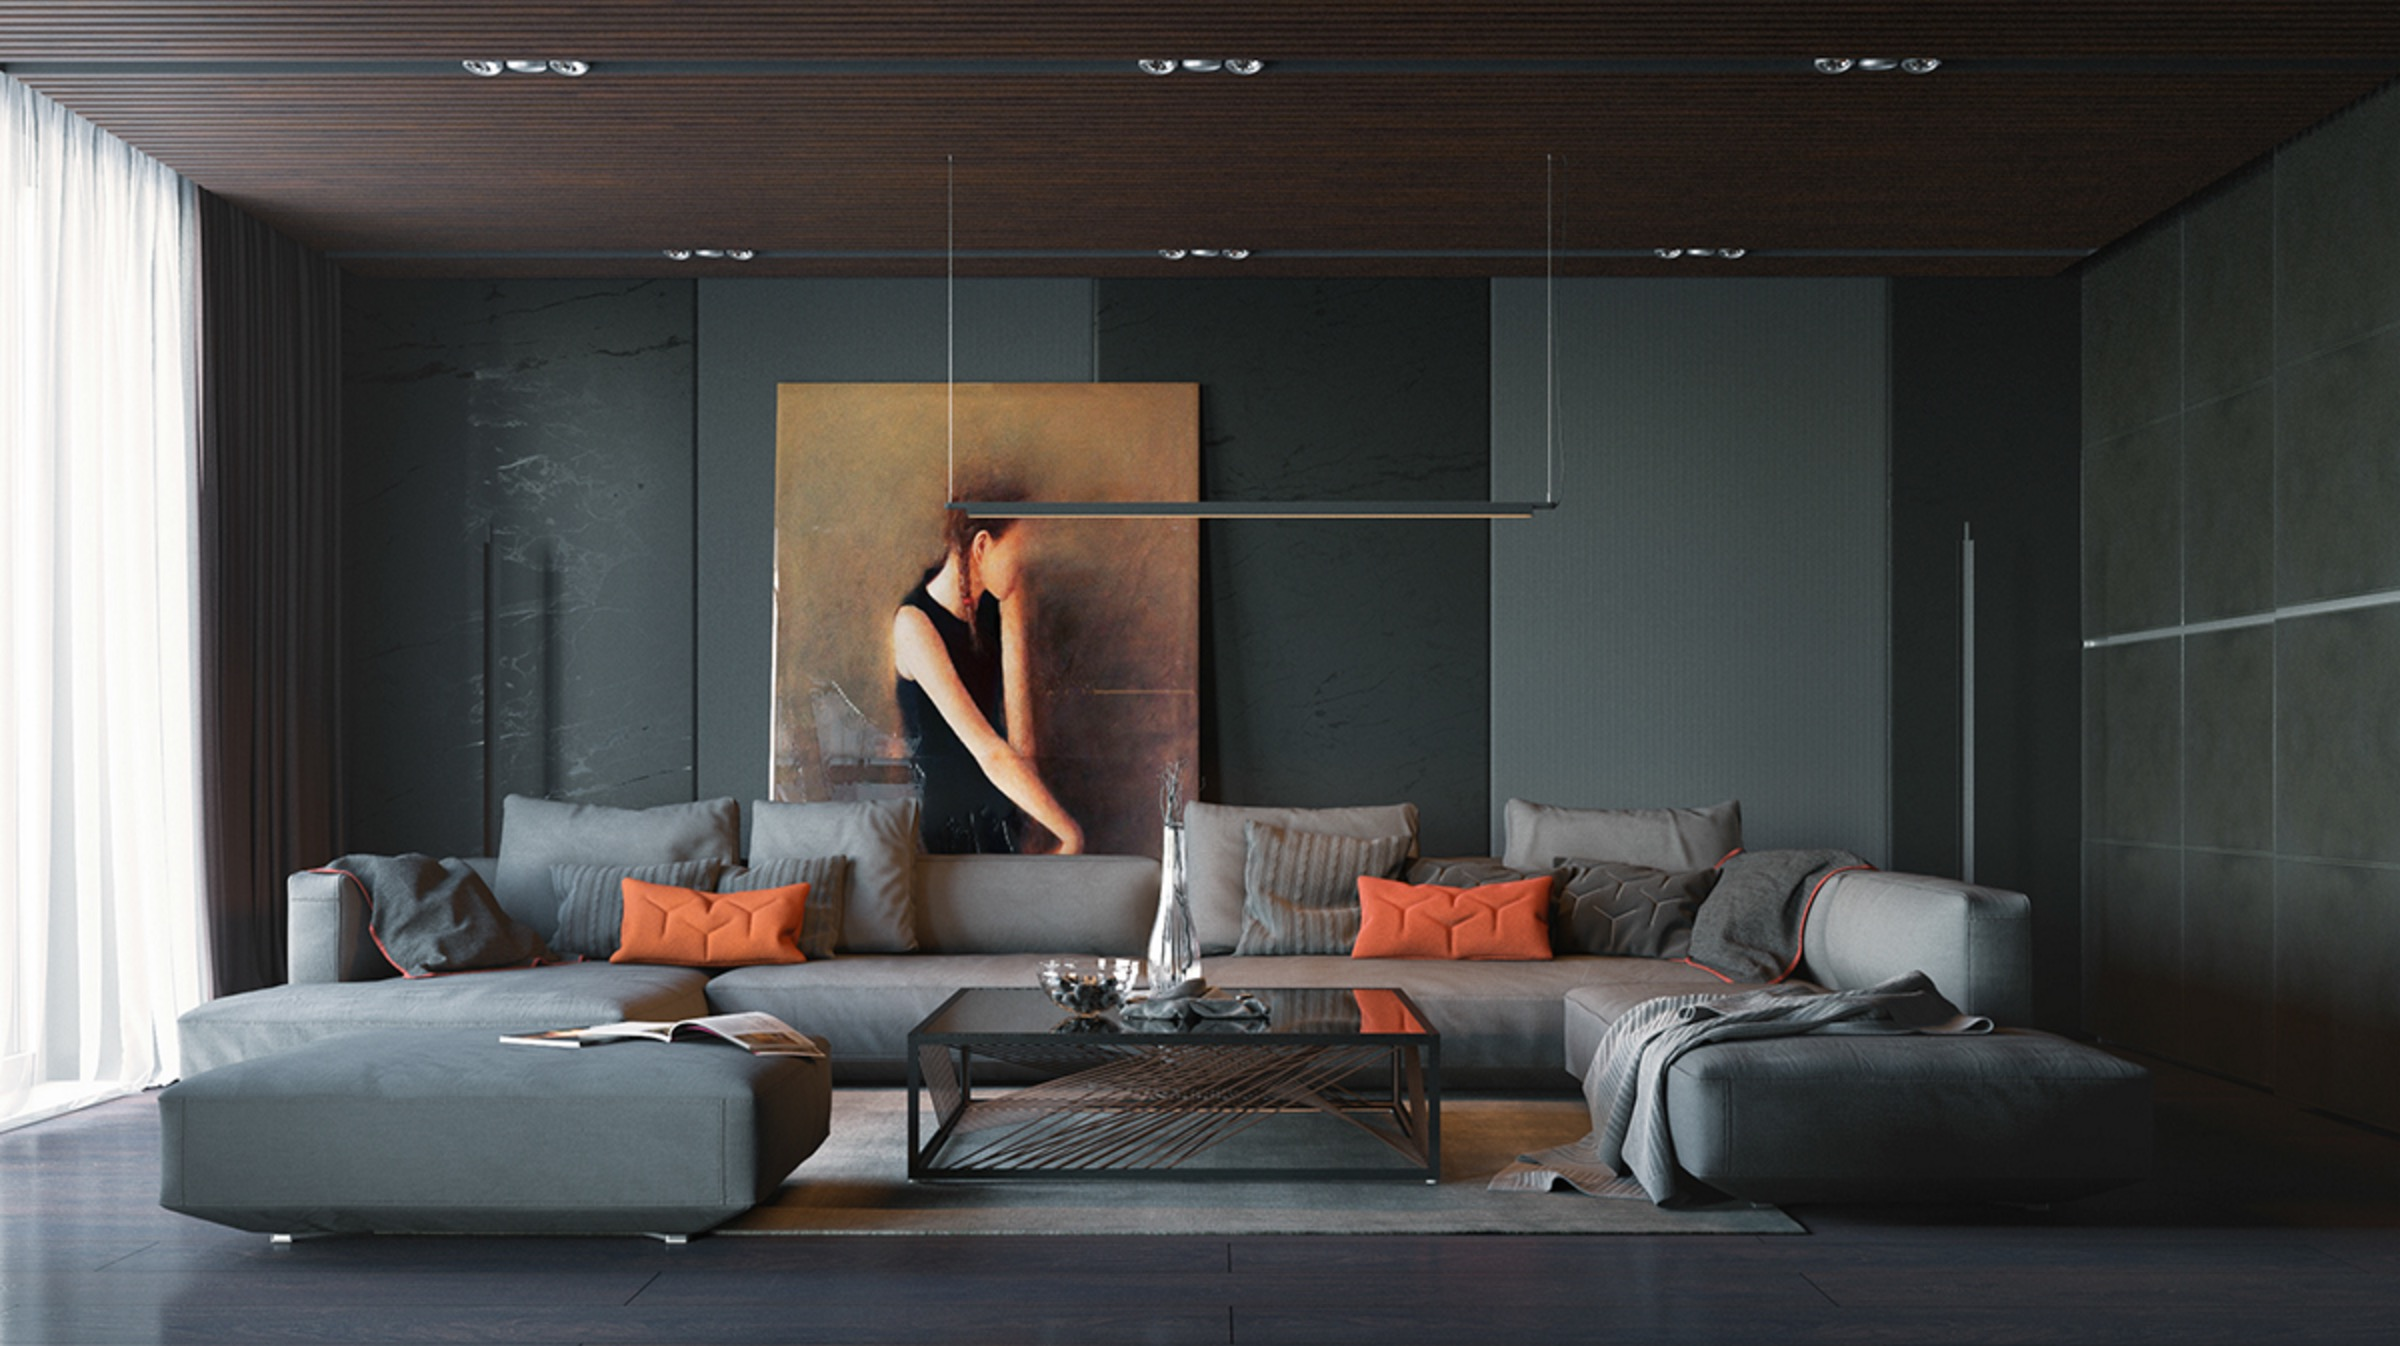 large wall art living rooms ideas inspiration small open plan kitchen living room design ideas